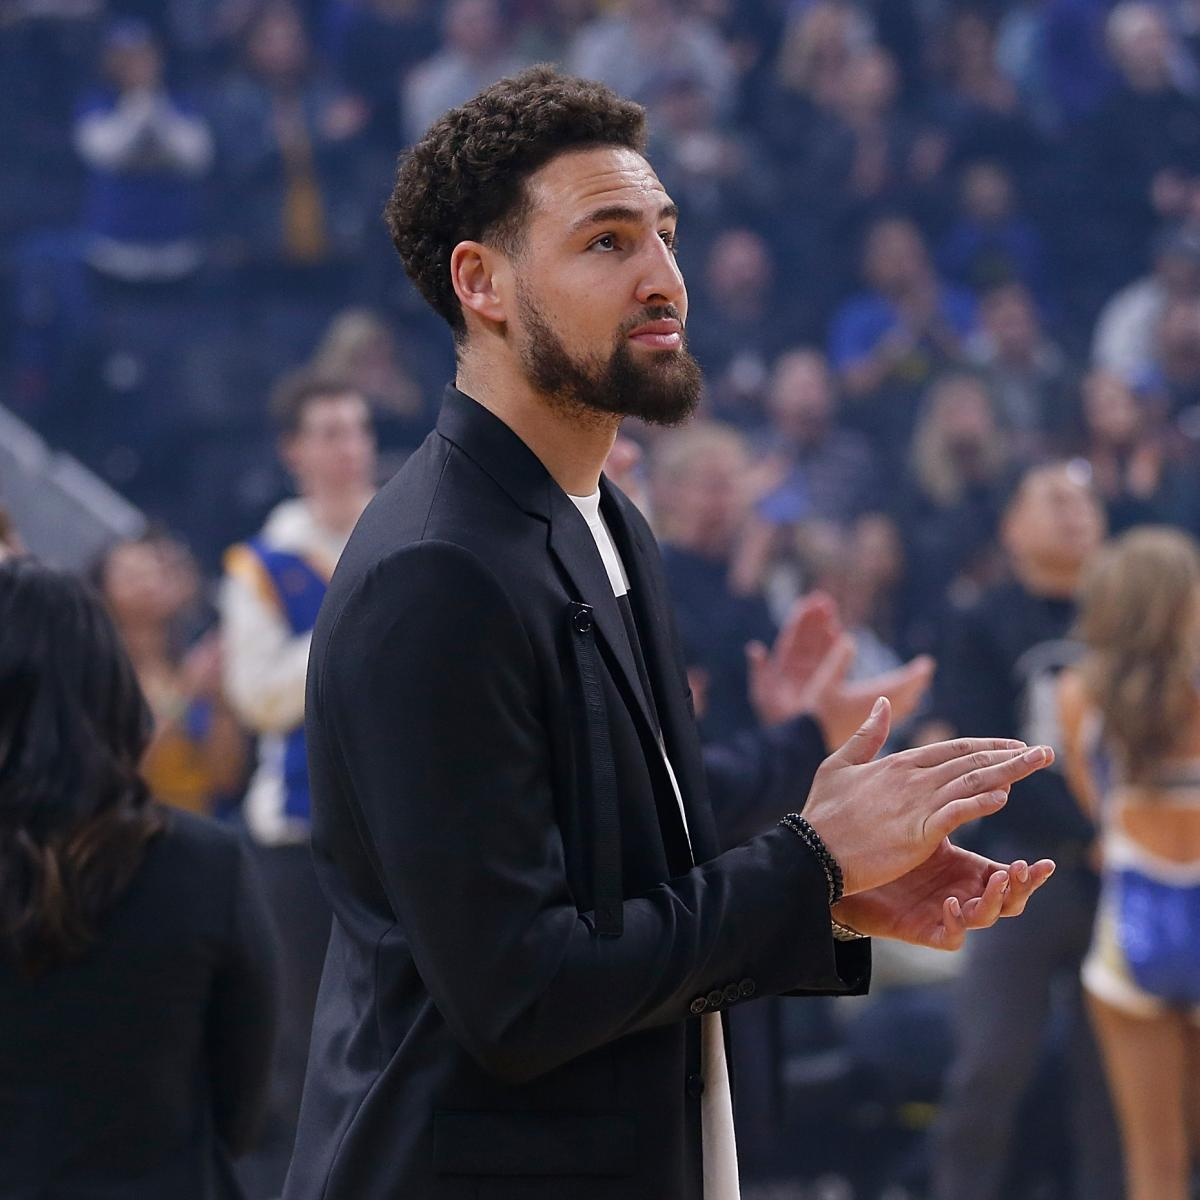 Warriors News: Klay Thompson Ruled out for 2019-20 Season Amid ACL Injury